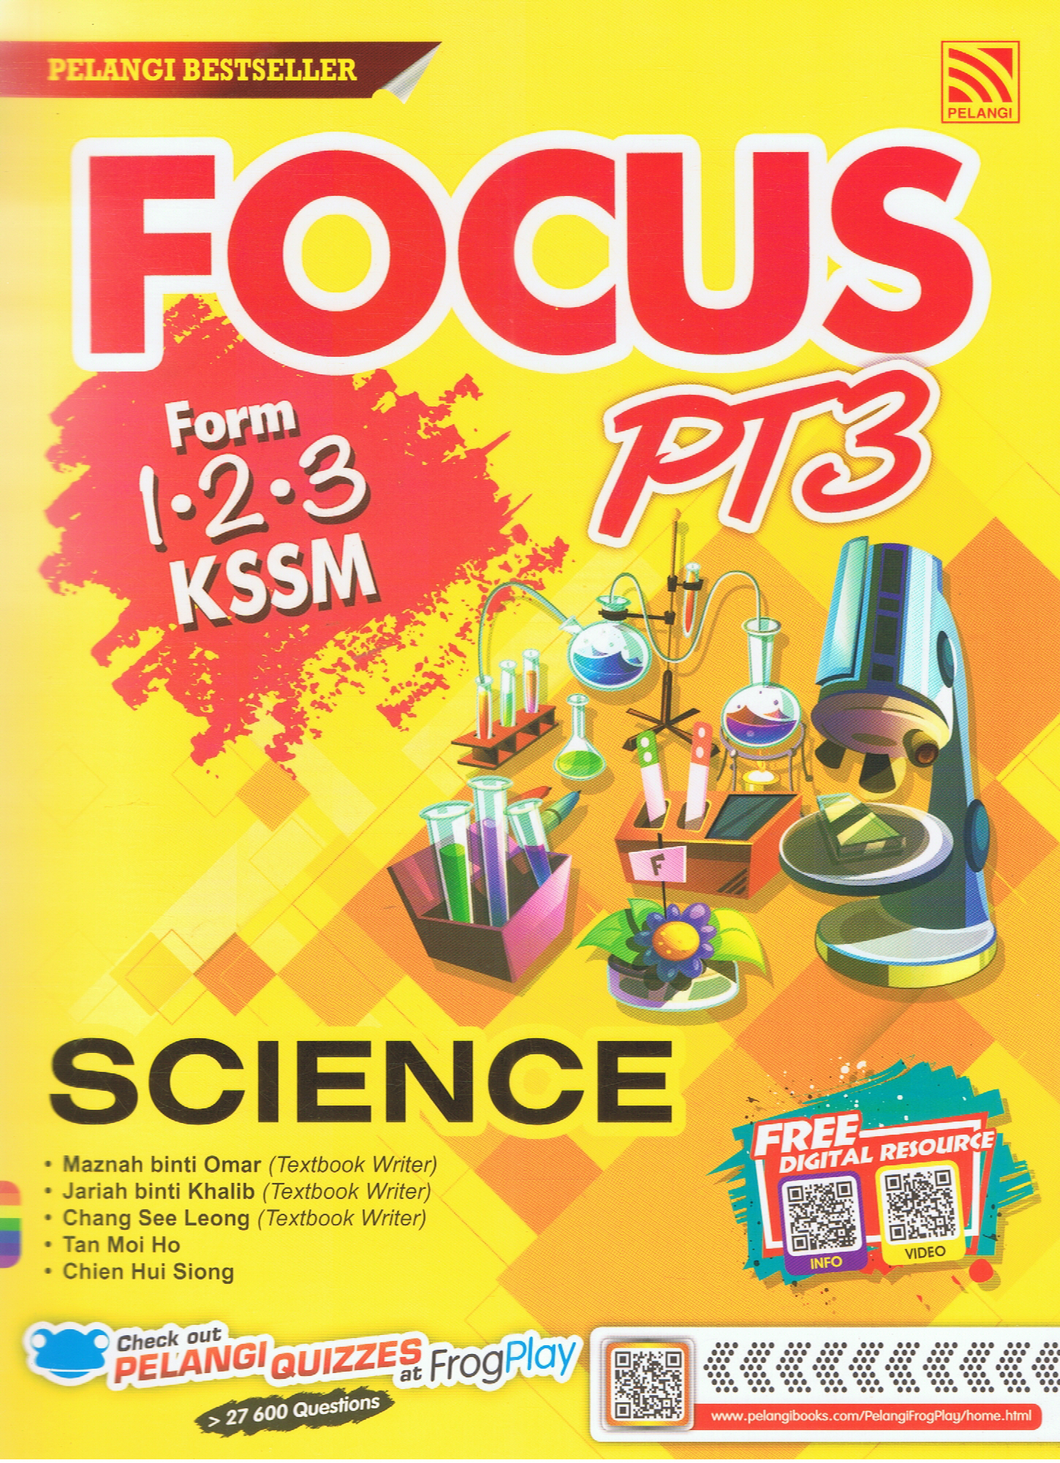 Focus PT3: Science Form 1,2,3